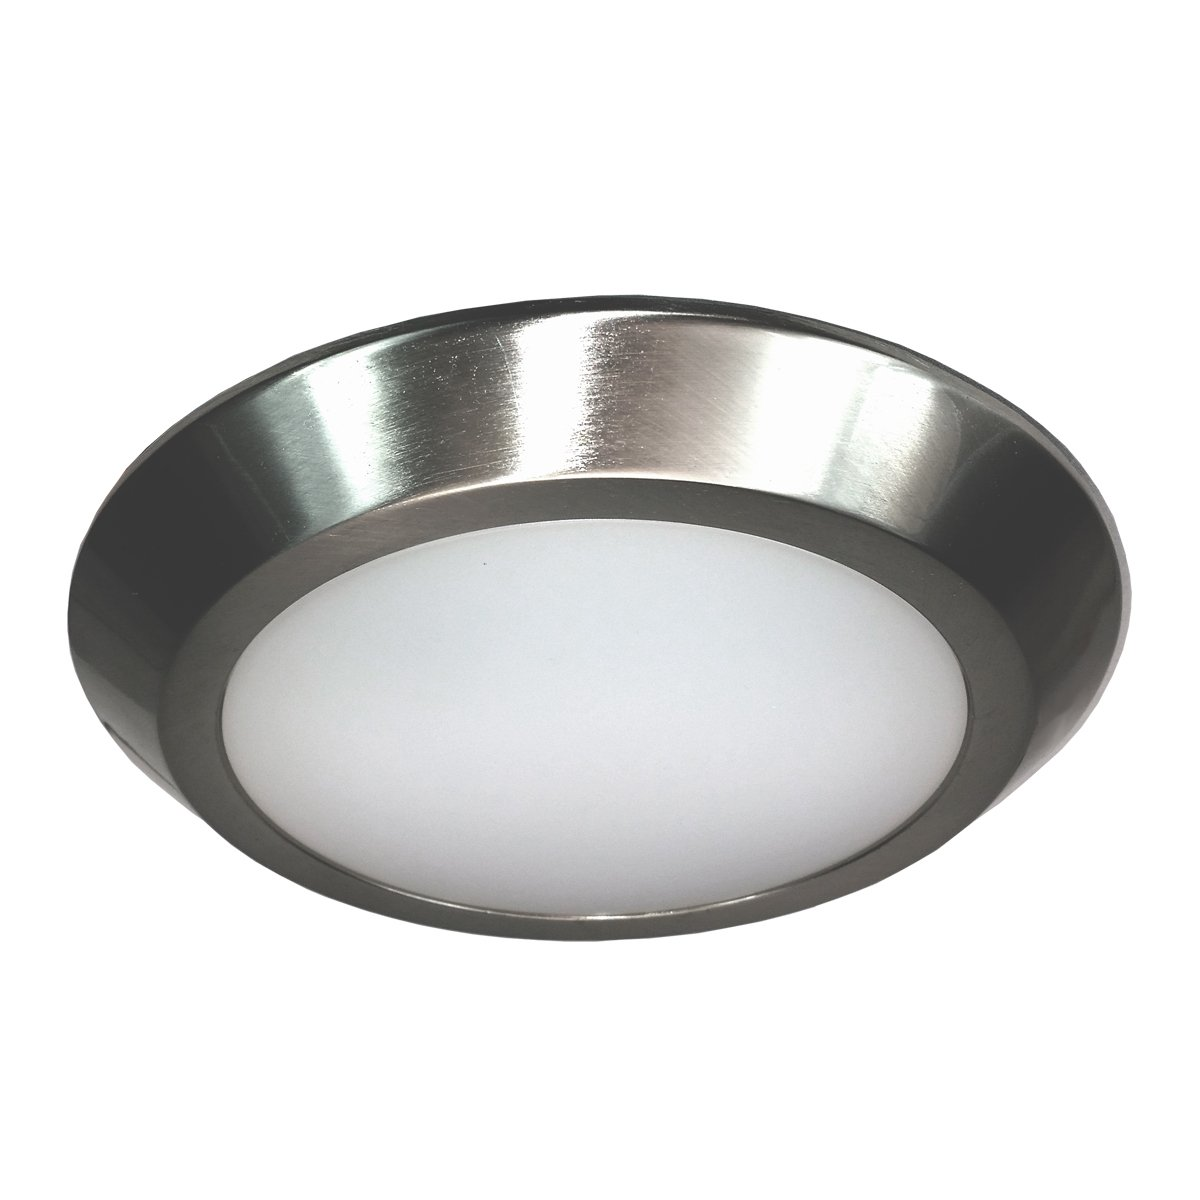 HomeSelects 8137 LED Surface Mount Disc Light, Brushed Nickel with Opal Acrylic Globe, 7.75''Lx7.75''Wx0.75''H